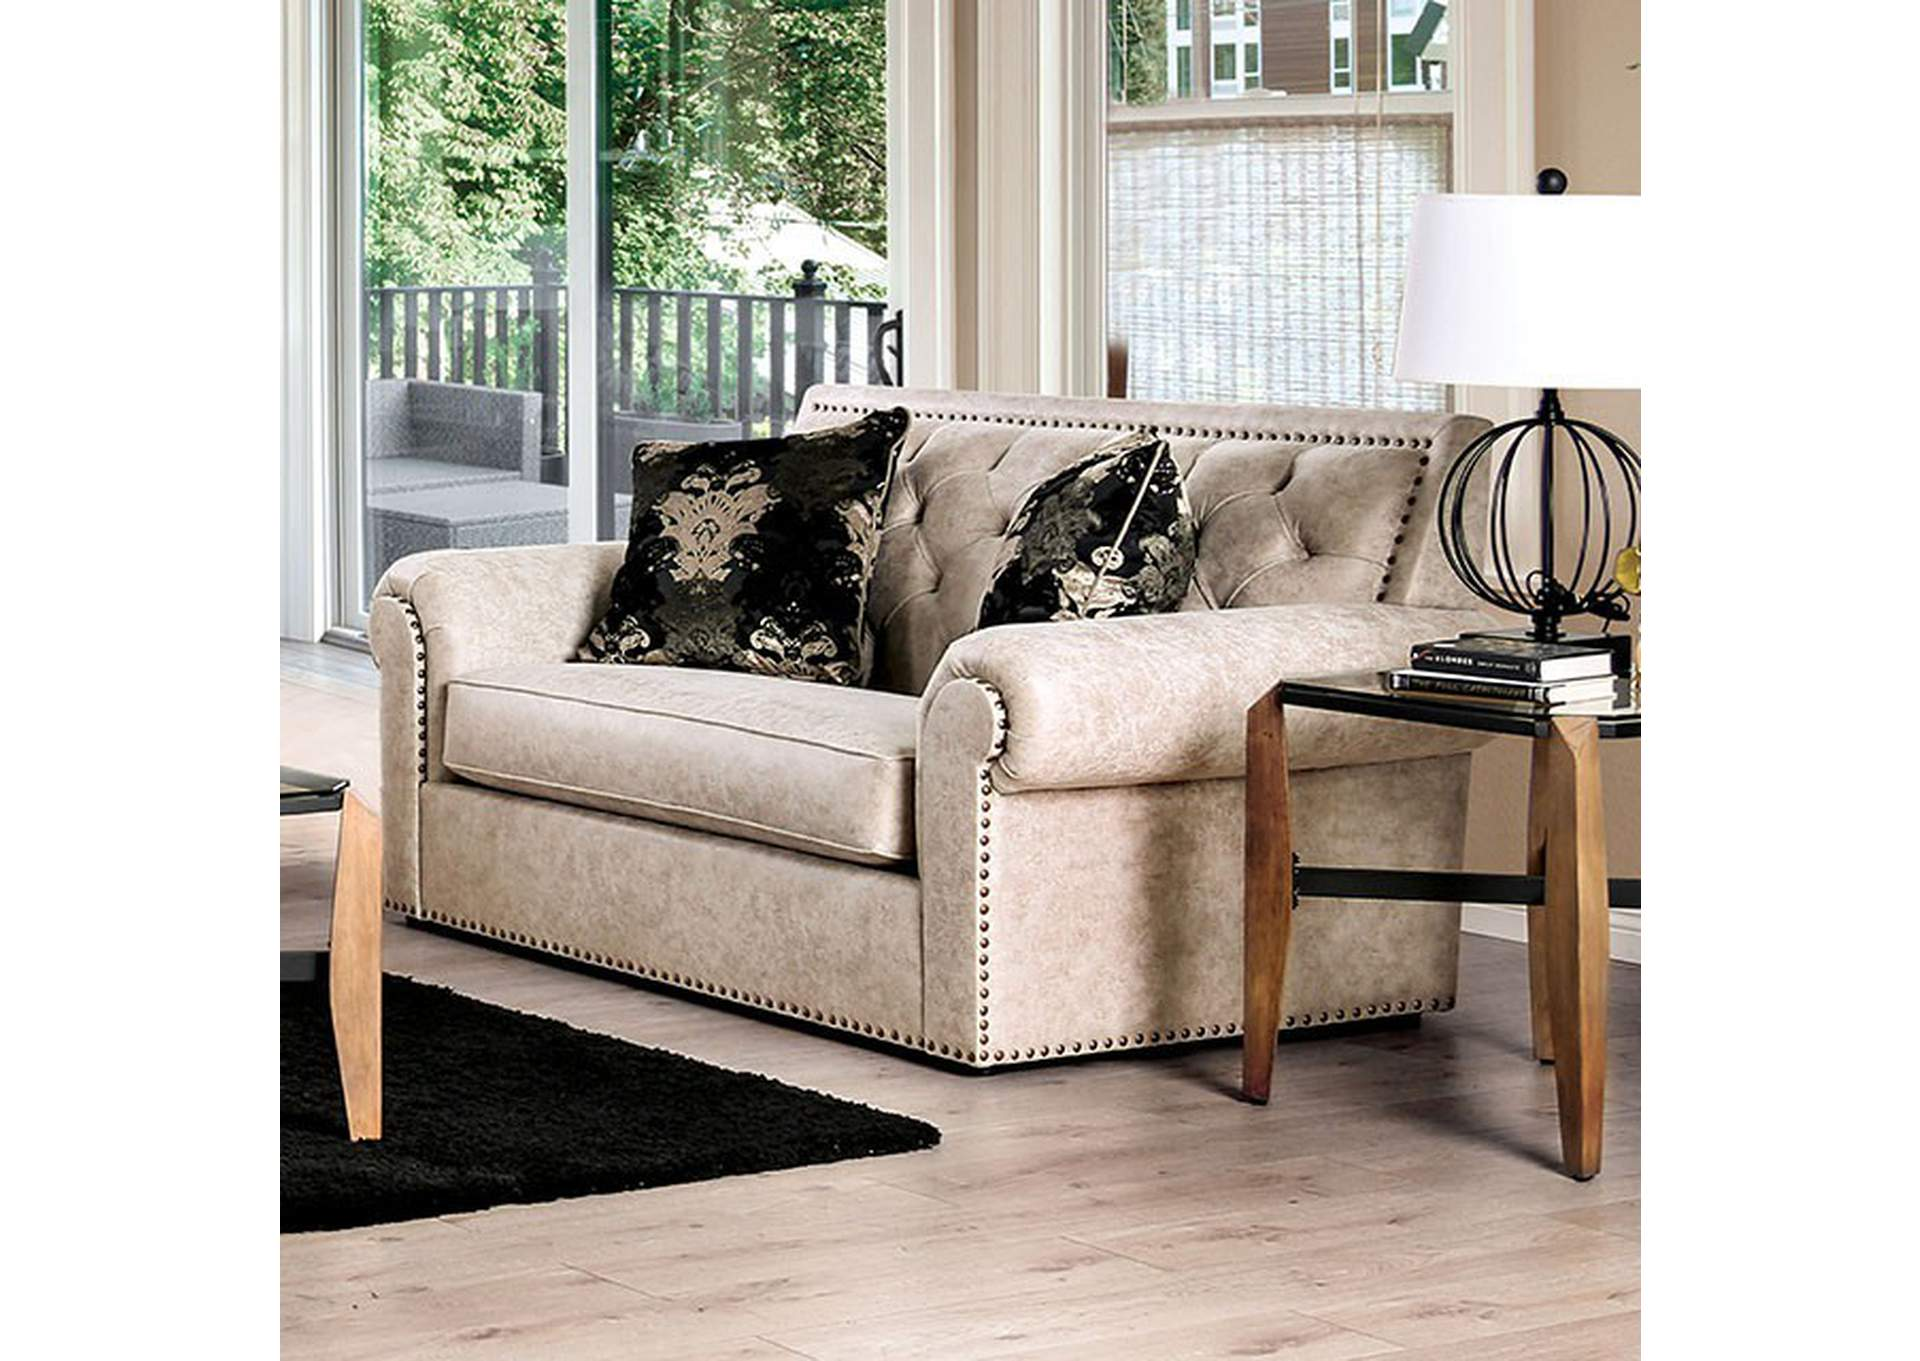 Parshall Beige Loveseat,Furniture of America